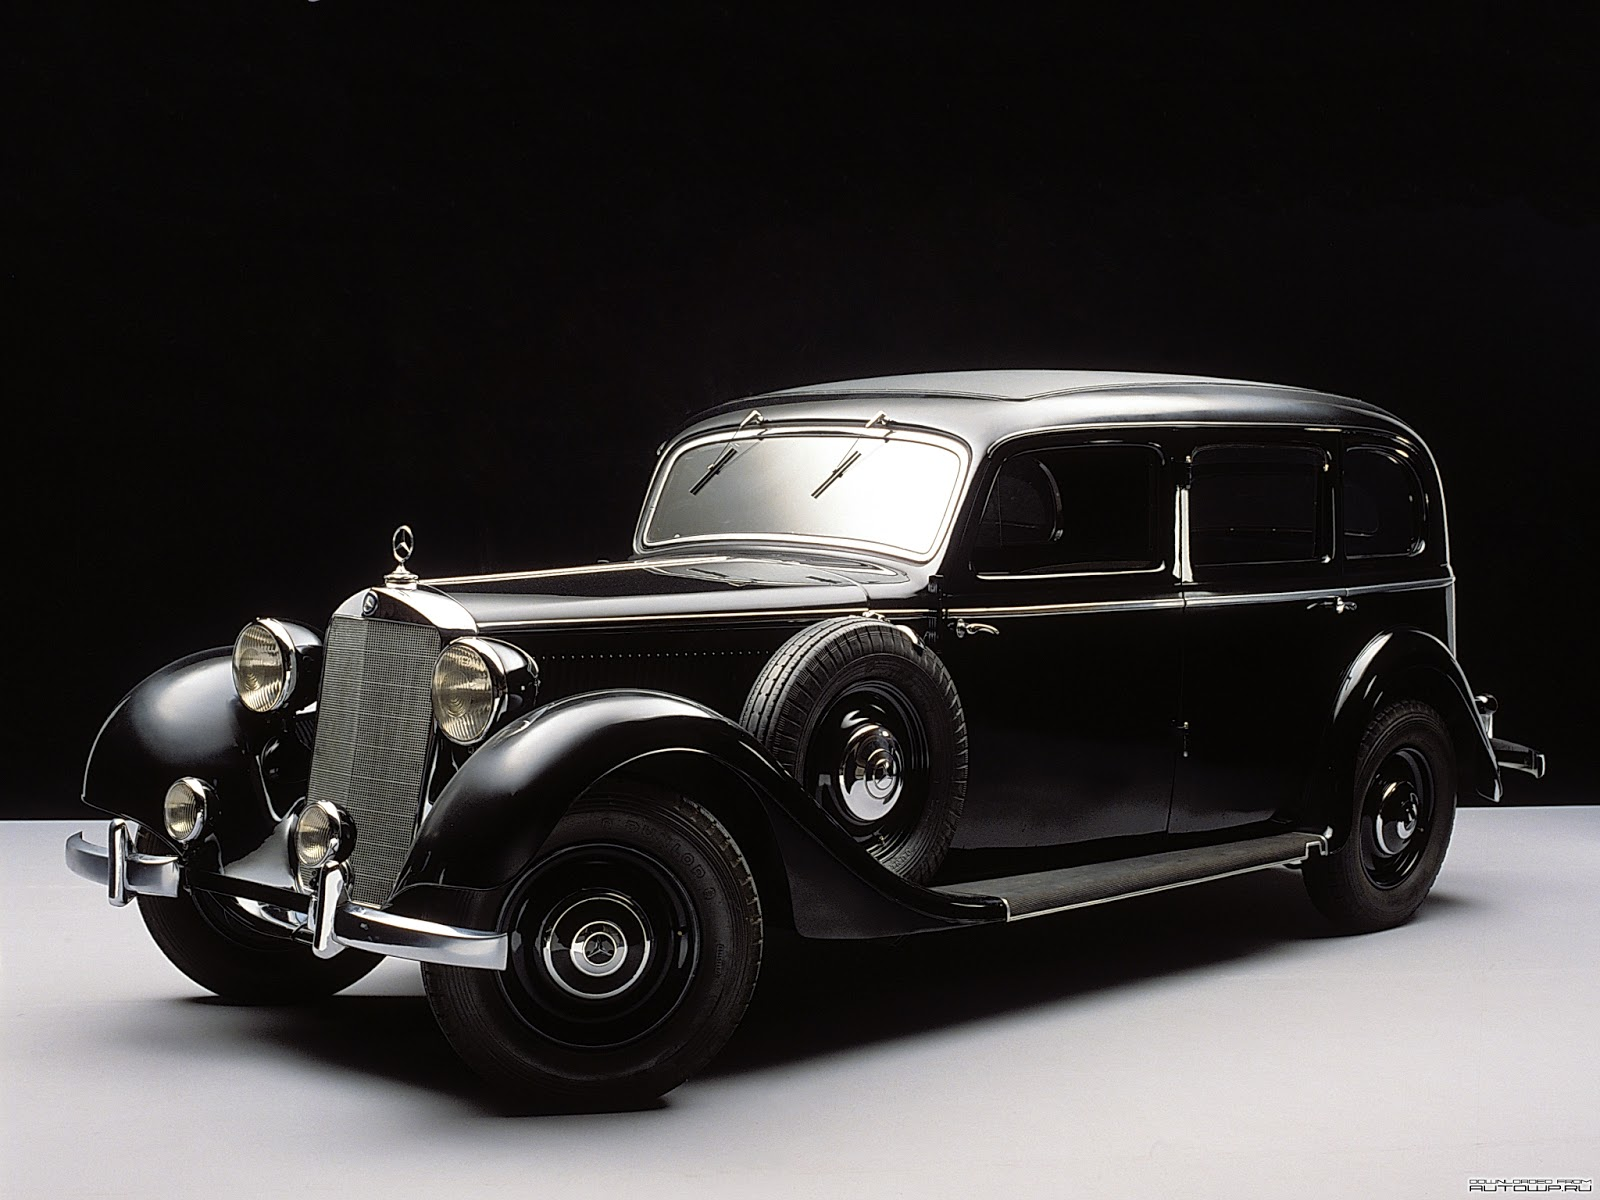 The Mercedes-Benz 260 D - Mercedes-Benz Produced and Sold the World's First Production Diesel-Powered Automobile